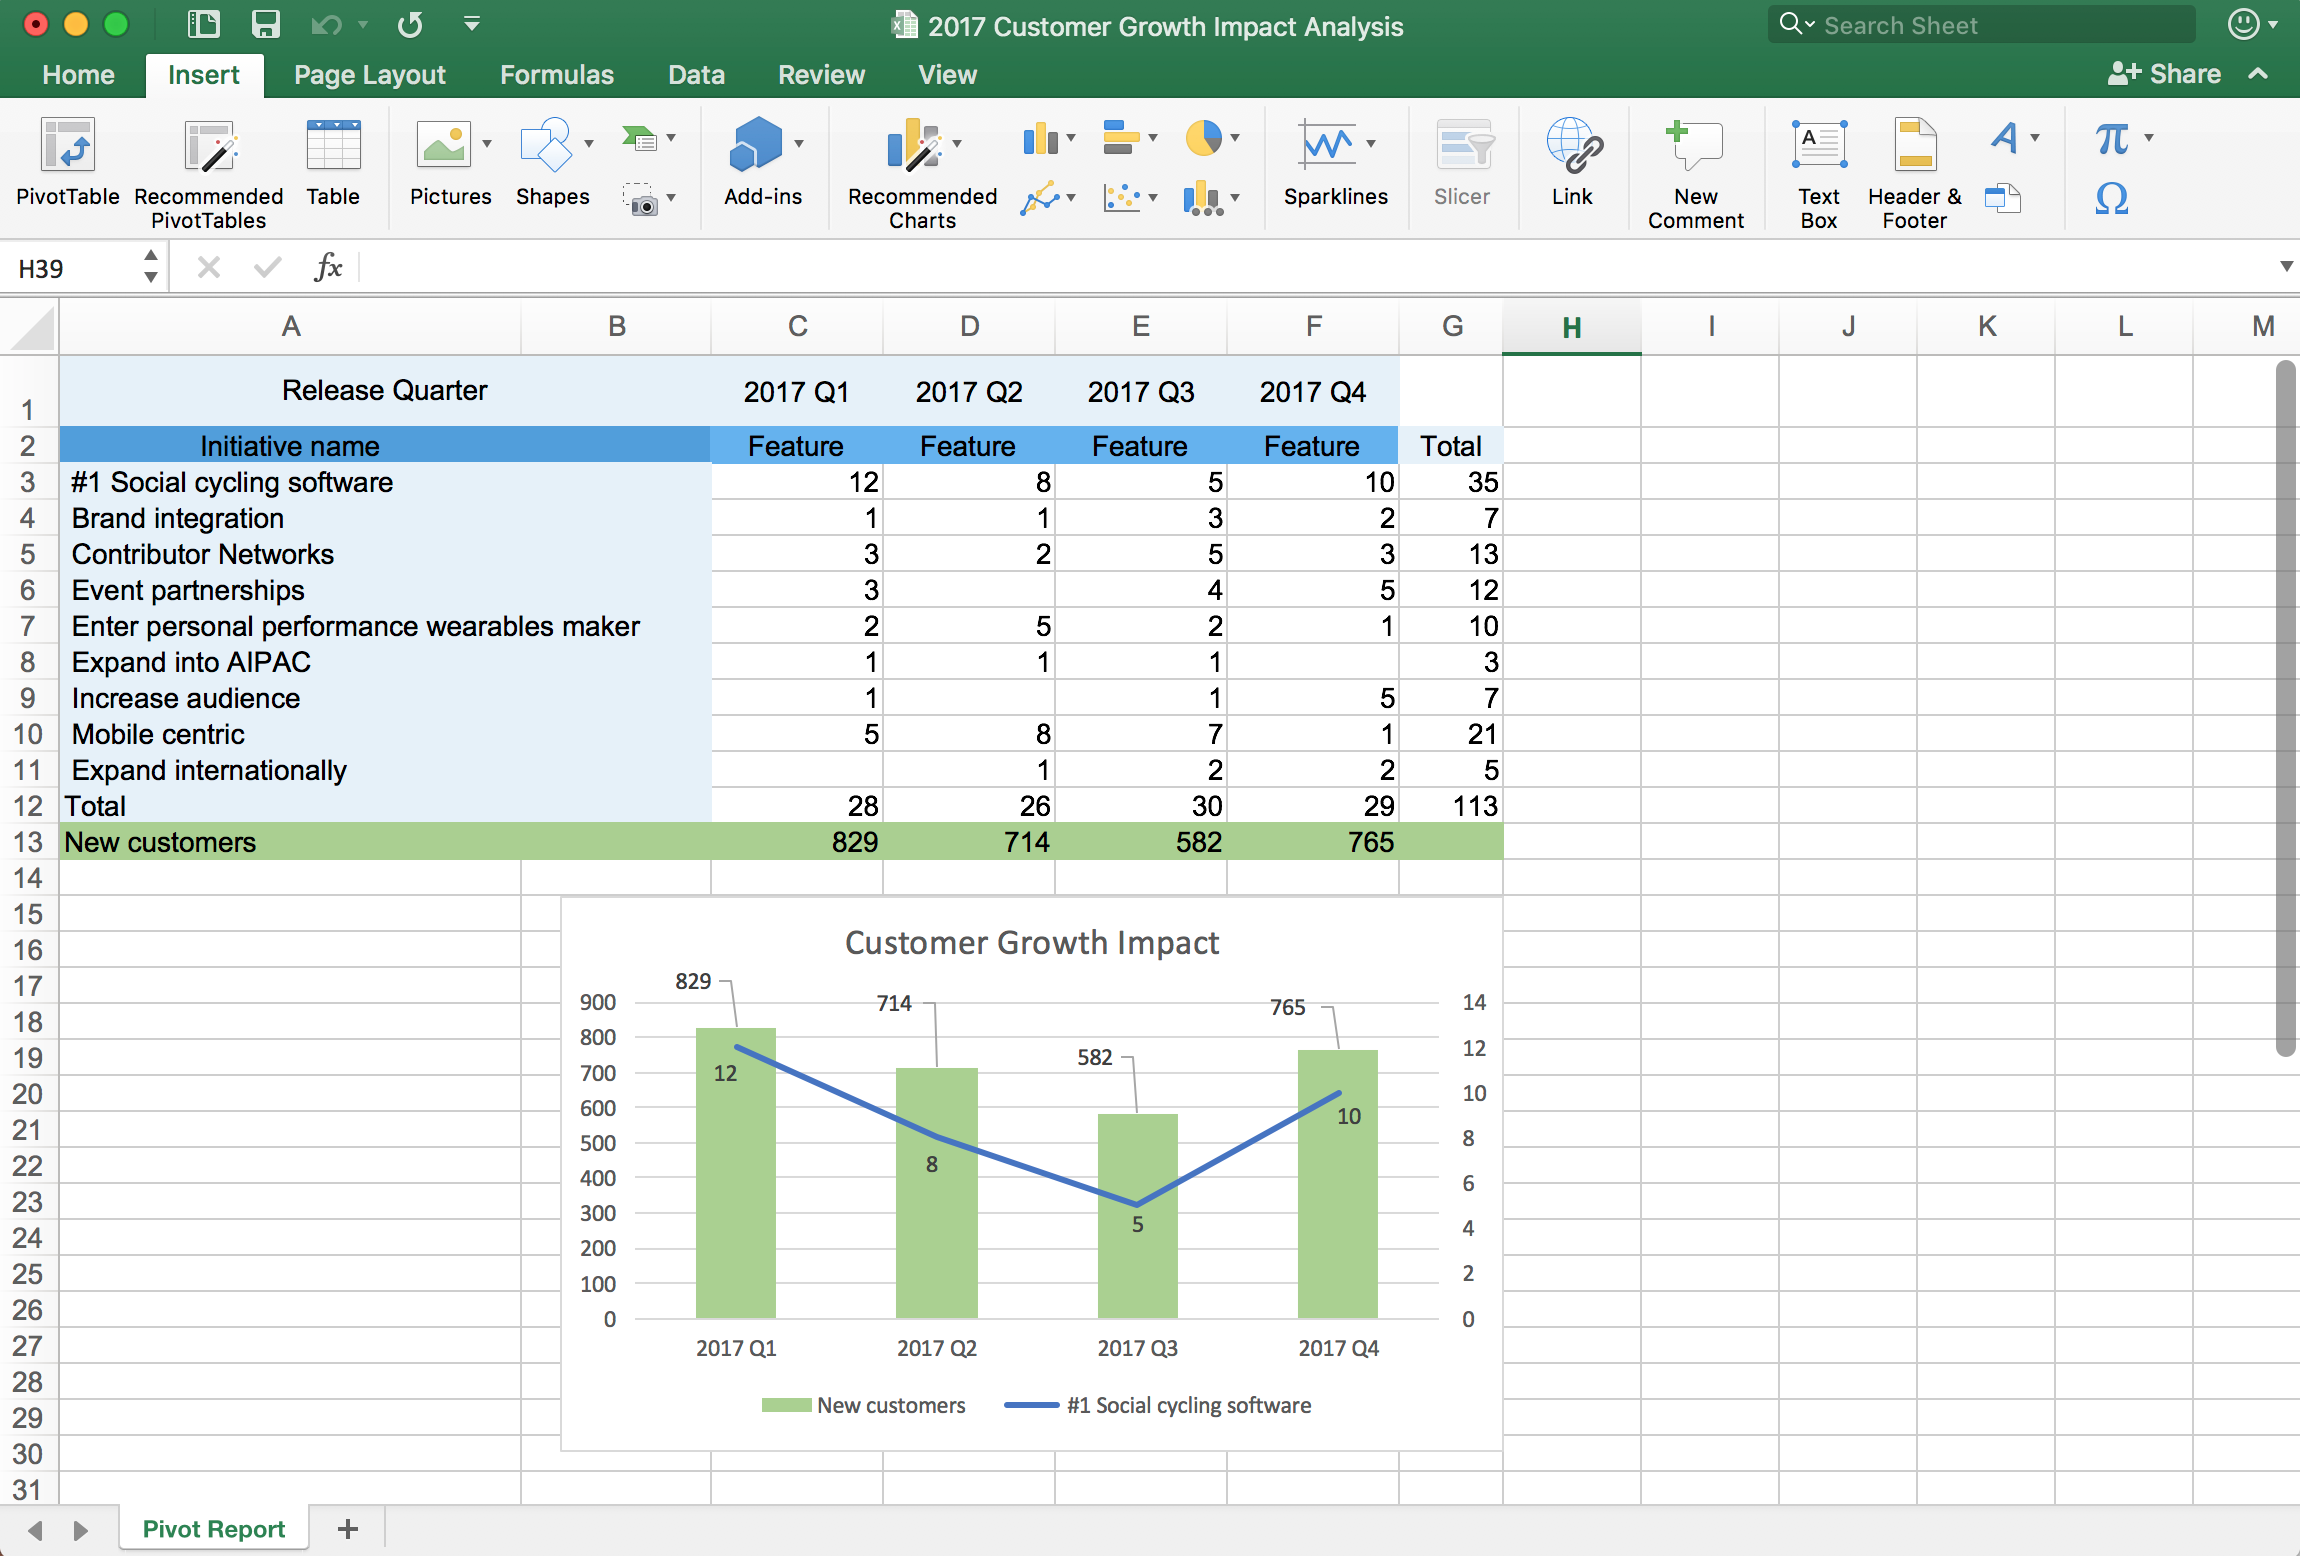 Image of Excel pivot report with chart exported from Aha!